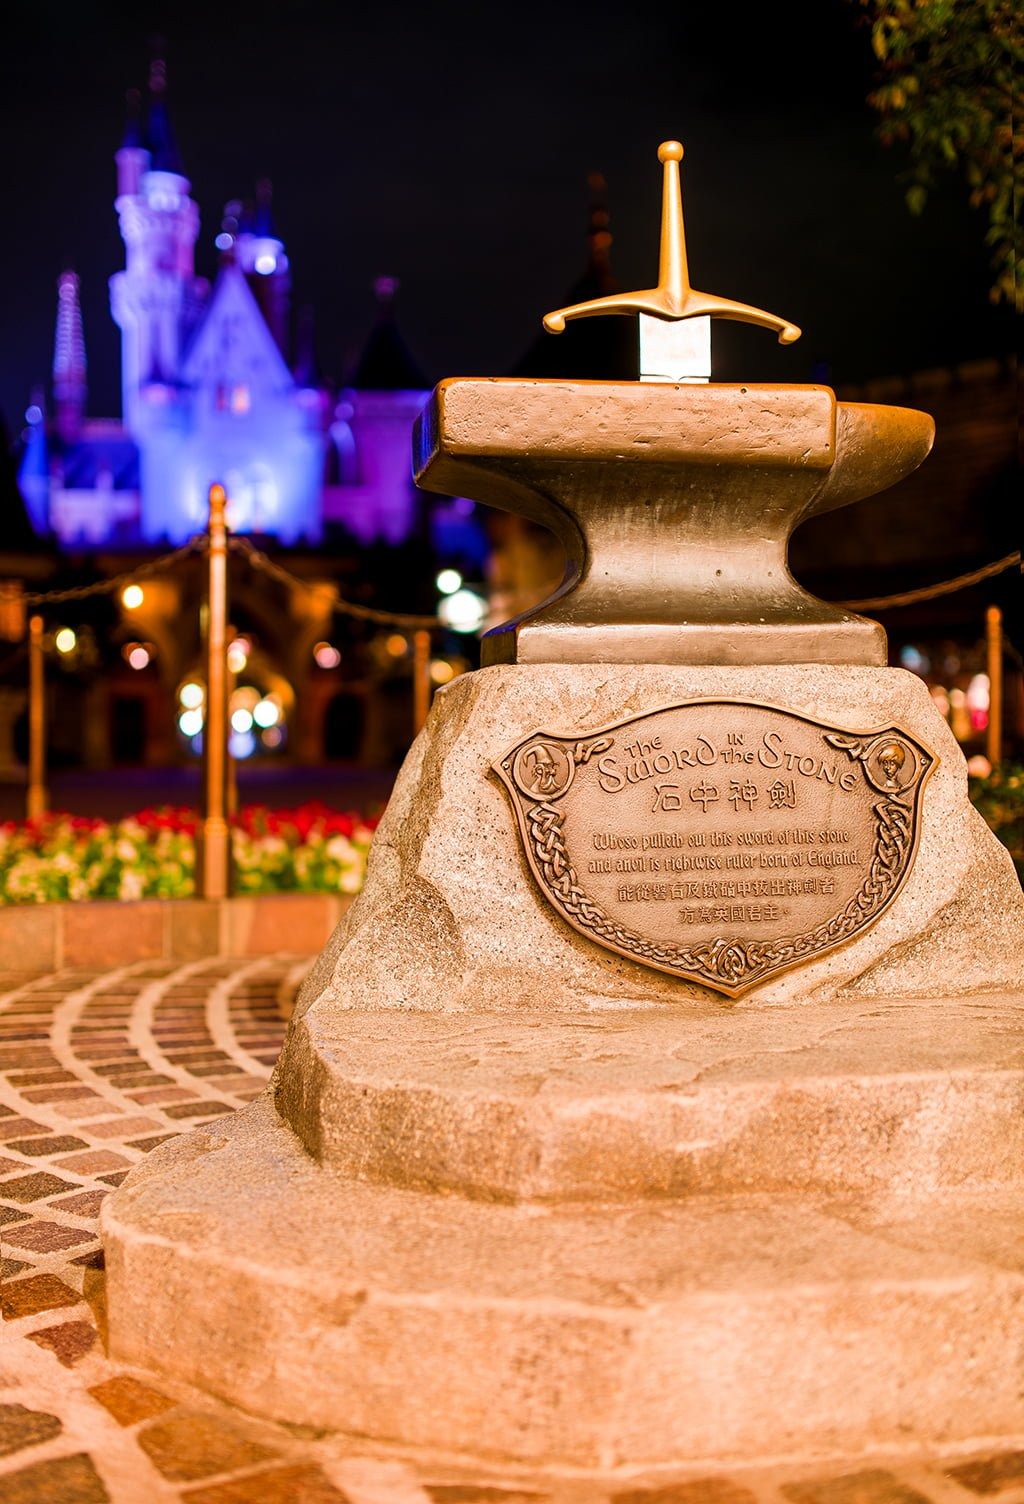 hong kong disney stakeholders The plans call for the expansion to be funded through cash equity injections from  hong kong disneyland's shareholders – subsidiaries of the.